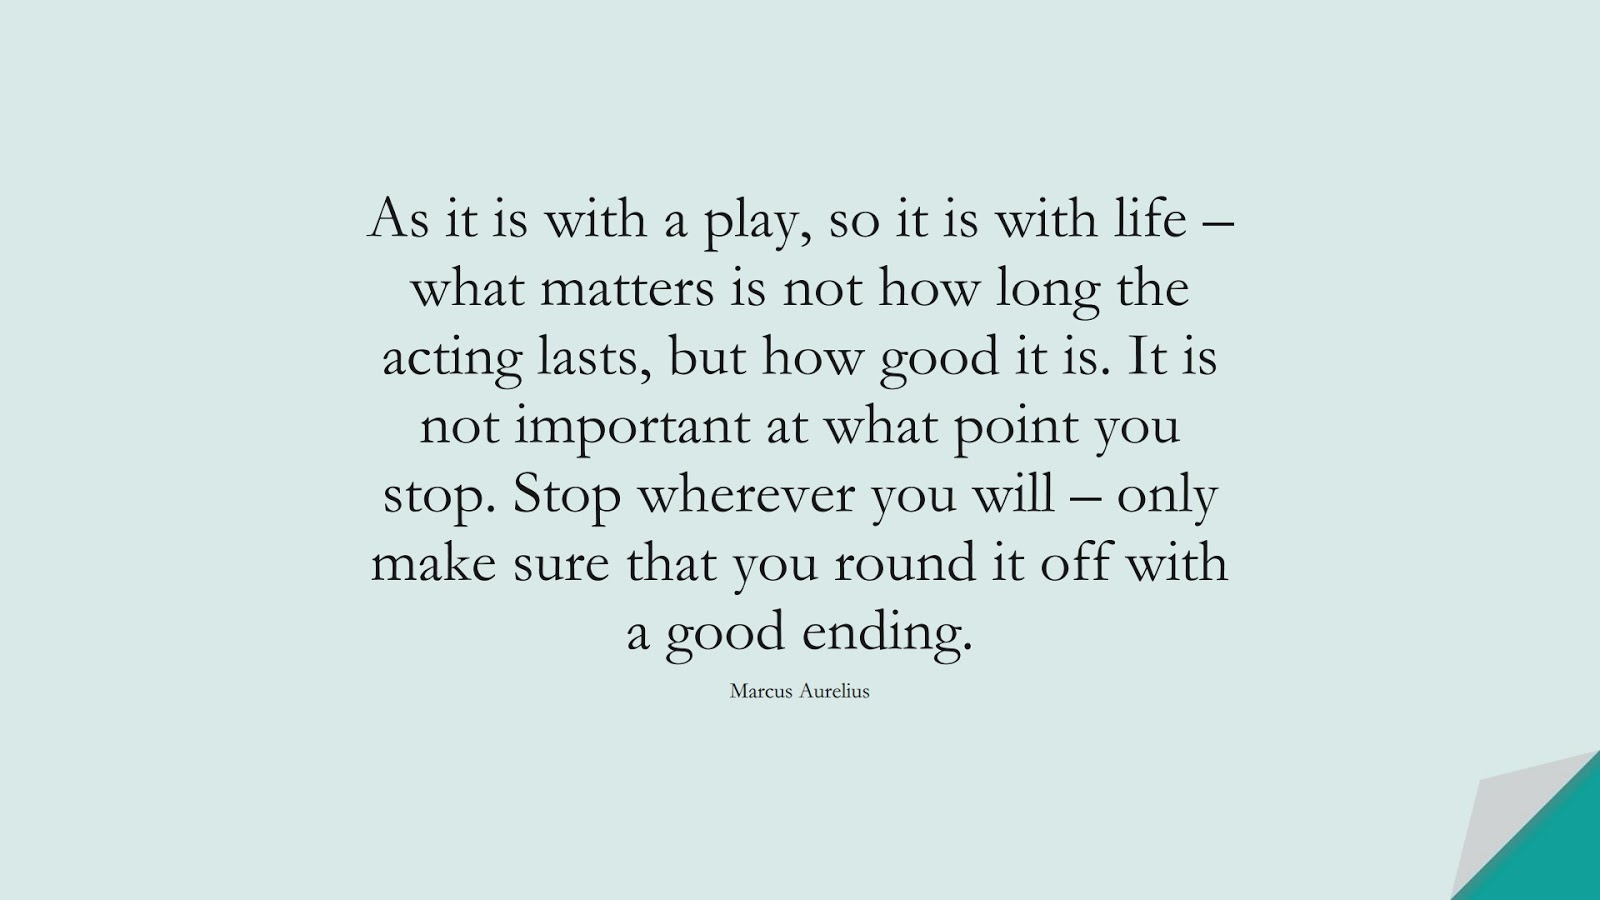 As it is with a play, so it is with life – what matters is not how long the acting lasts, but how good it is. It is not important at what point you stop. Stop wherever you will – only make sure that you round it off with a good ending. (Marcus Aurelius);  #MarcusAureliusQuotes